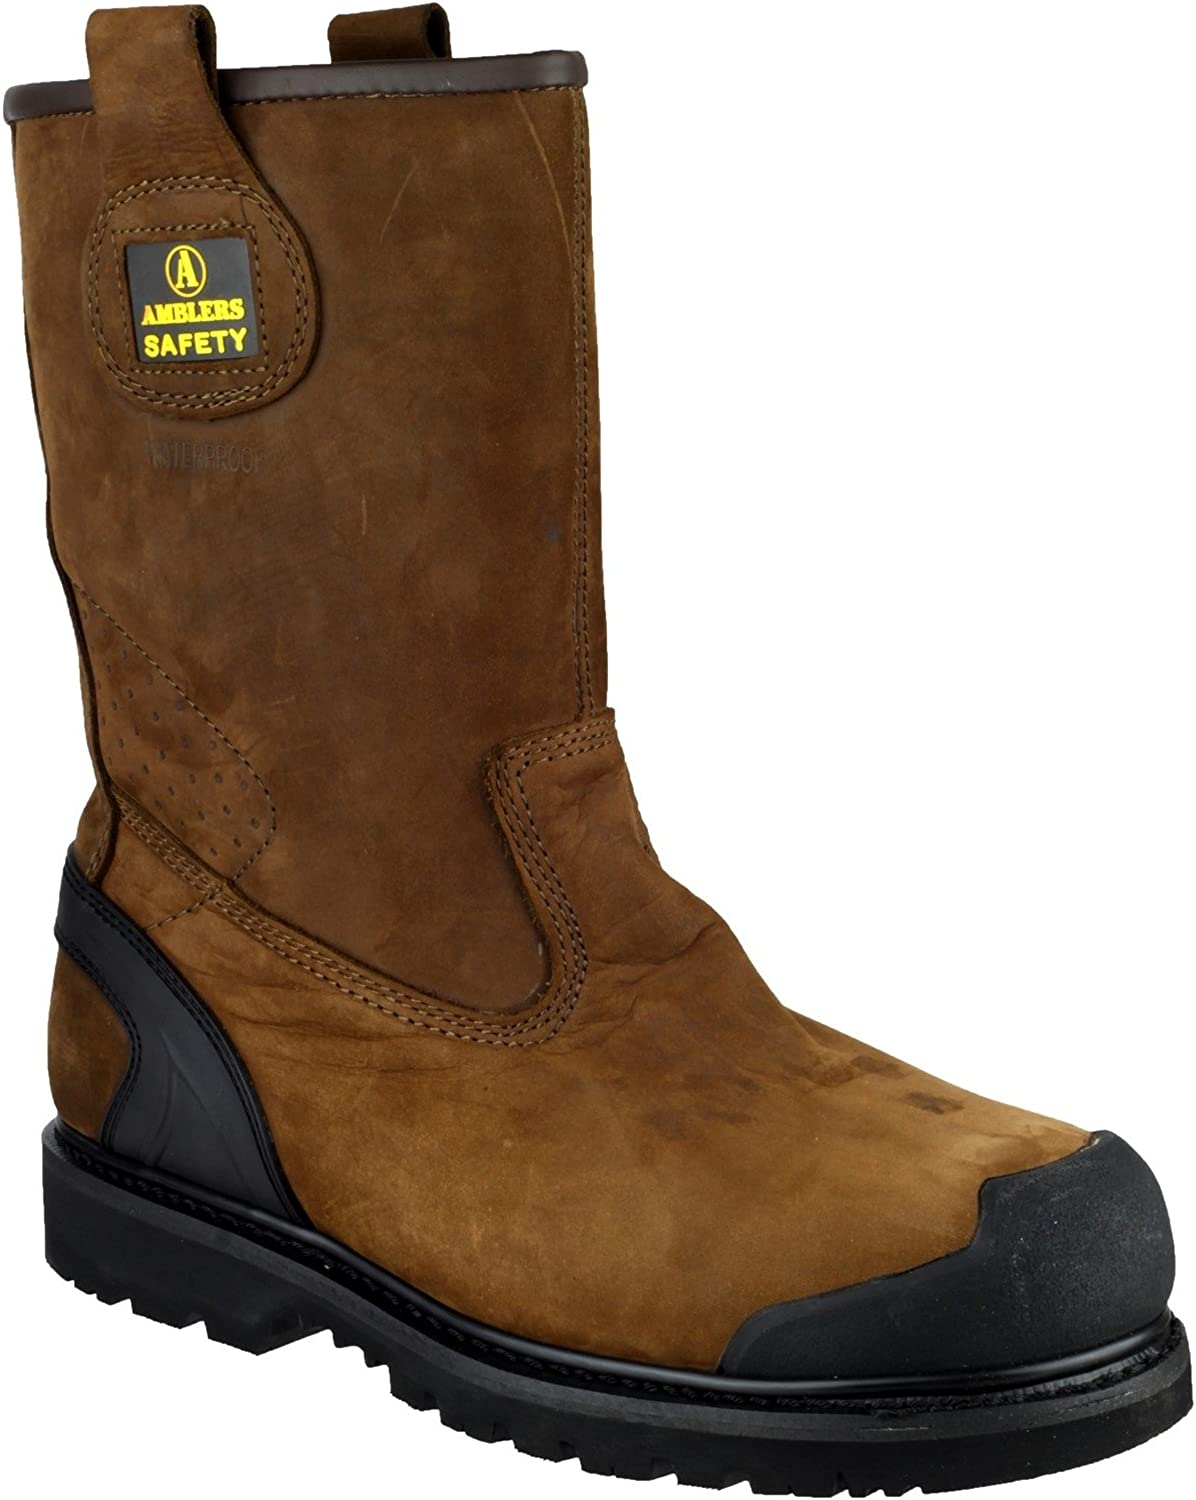 Mens Amblers Brown Leather Waterproof Safety Rigger Work Boots Sizes 7 8 9 10 11 12 13